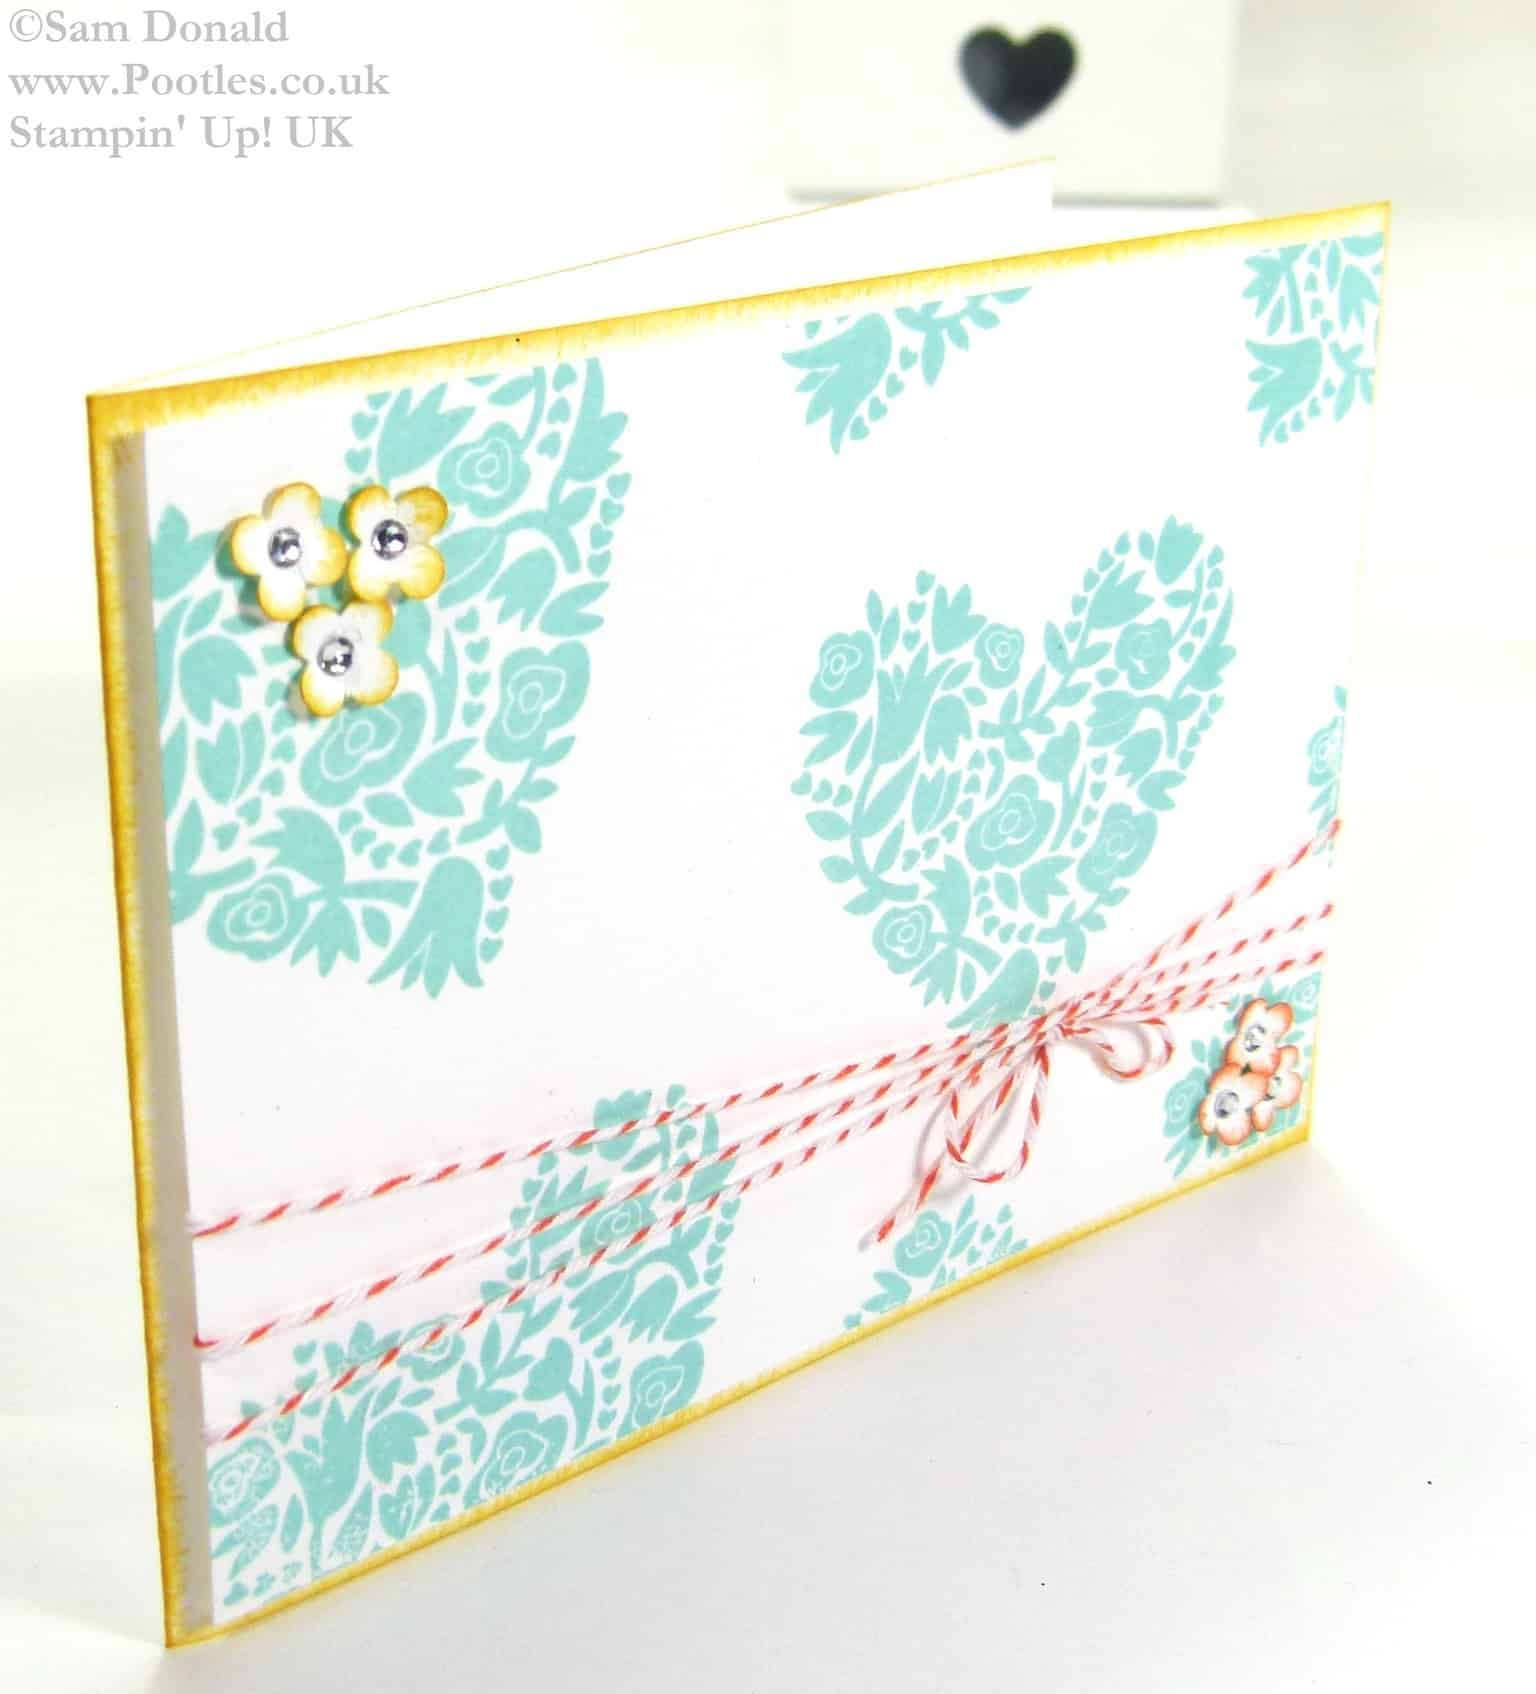 POOTLES Stampin Up UK Around the World Stampin Up Challenge AW07 3